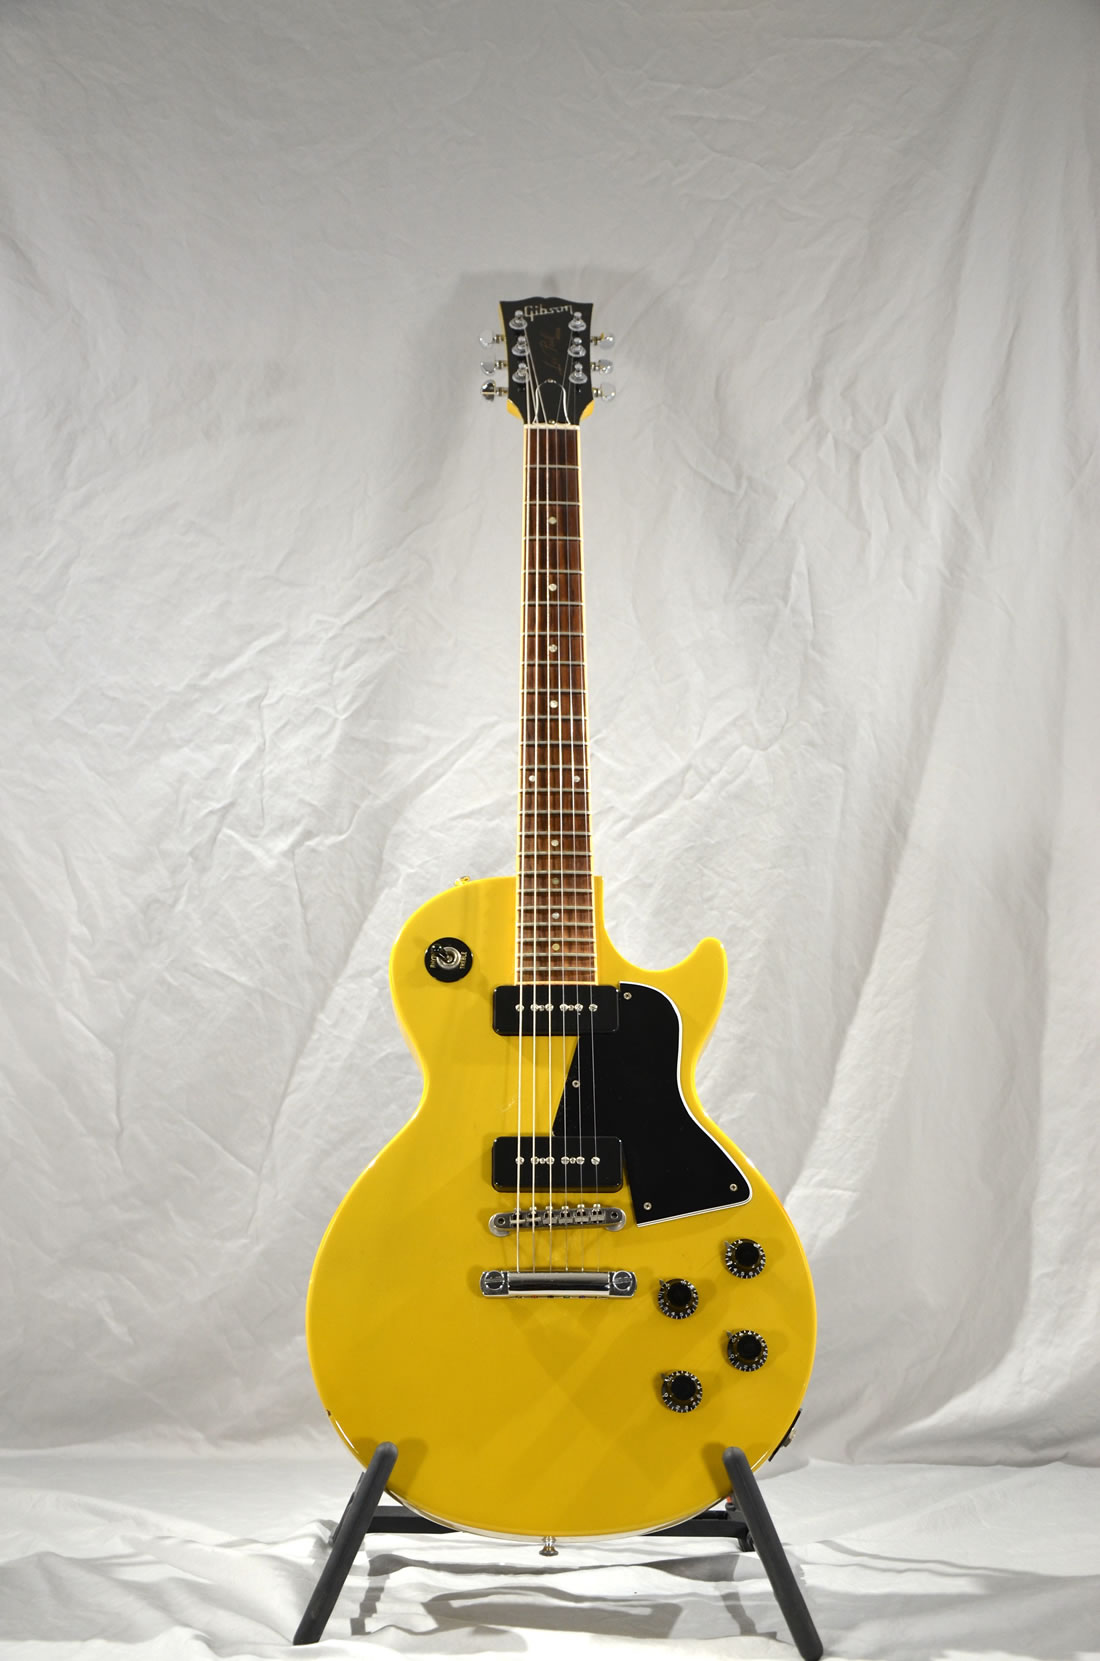 "1991 Gibson Les Paul Special ""TV Show Yellow Guitar"" Reissue"